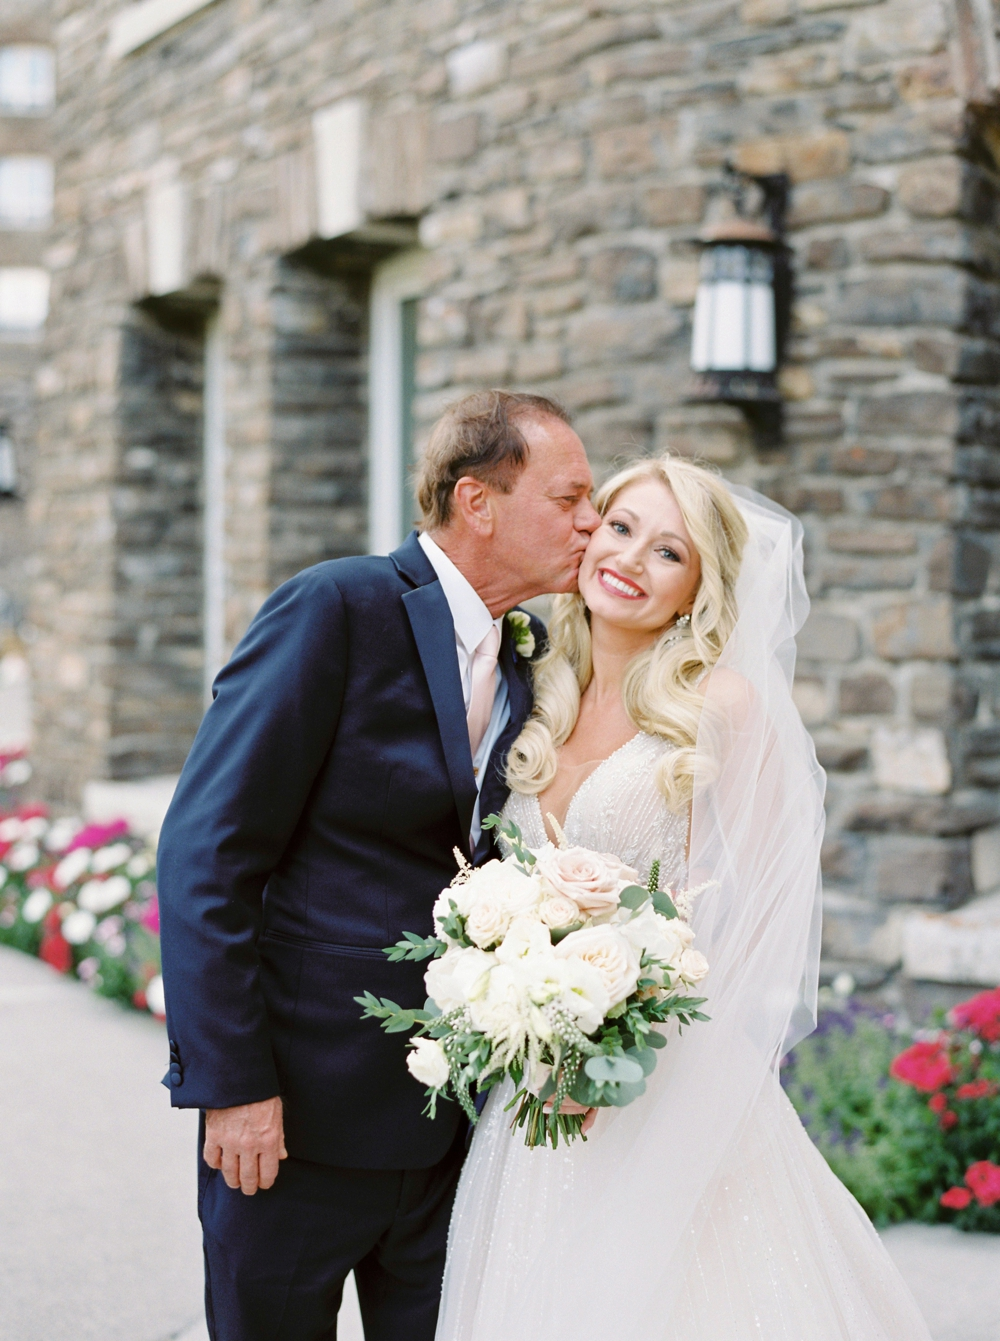 Bride and her dad at the Fairmont Banff Springs Hotel | Banff Rocky Mountain Wedding Photographers | Justine Milton fine art film photography